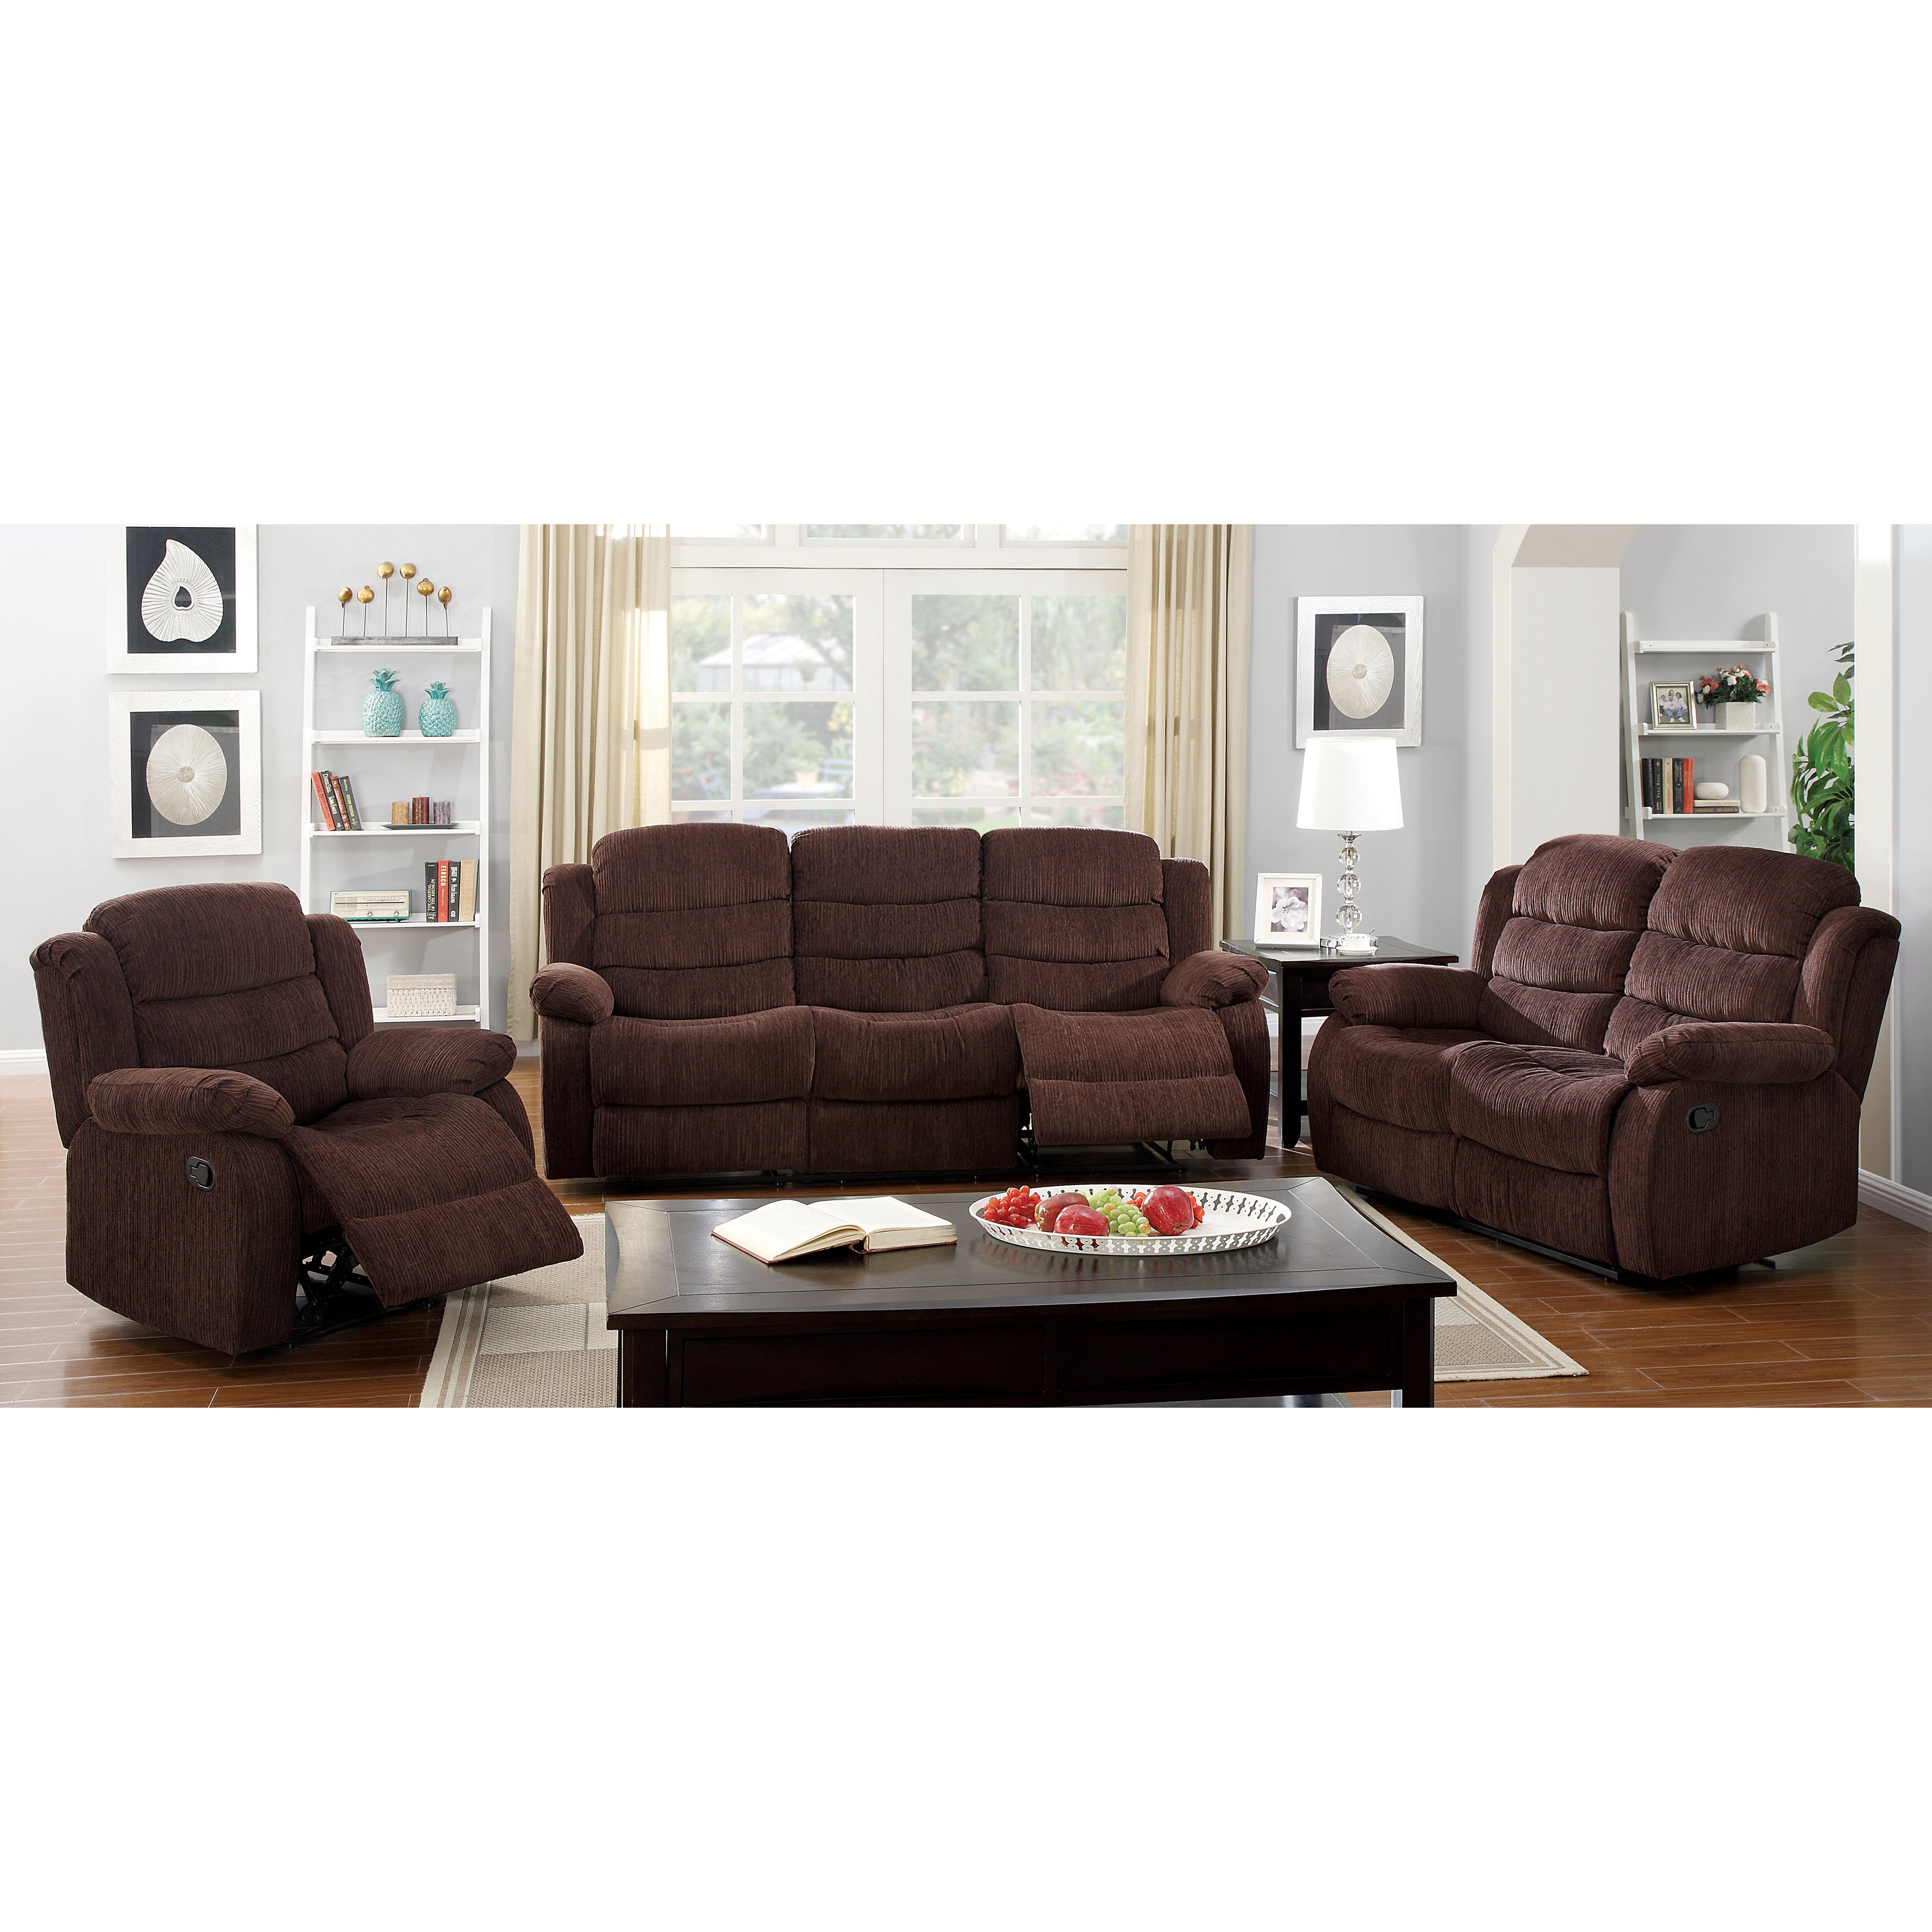 Shop Furniture of America Aurese Chenille Recliner - On Sale - Free ...